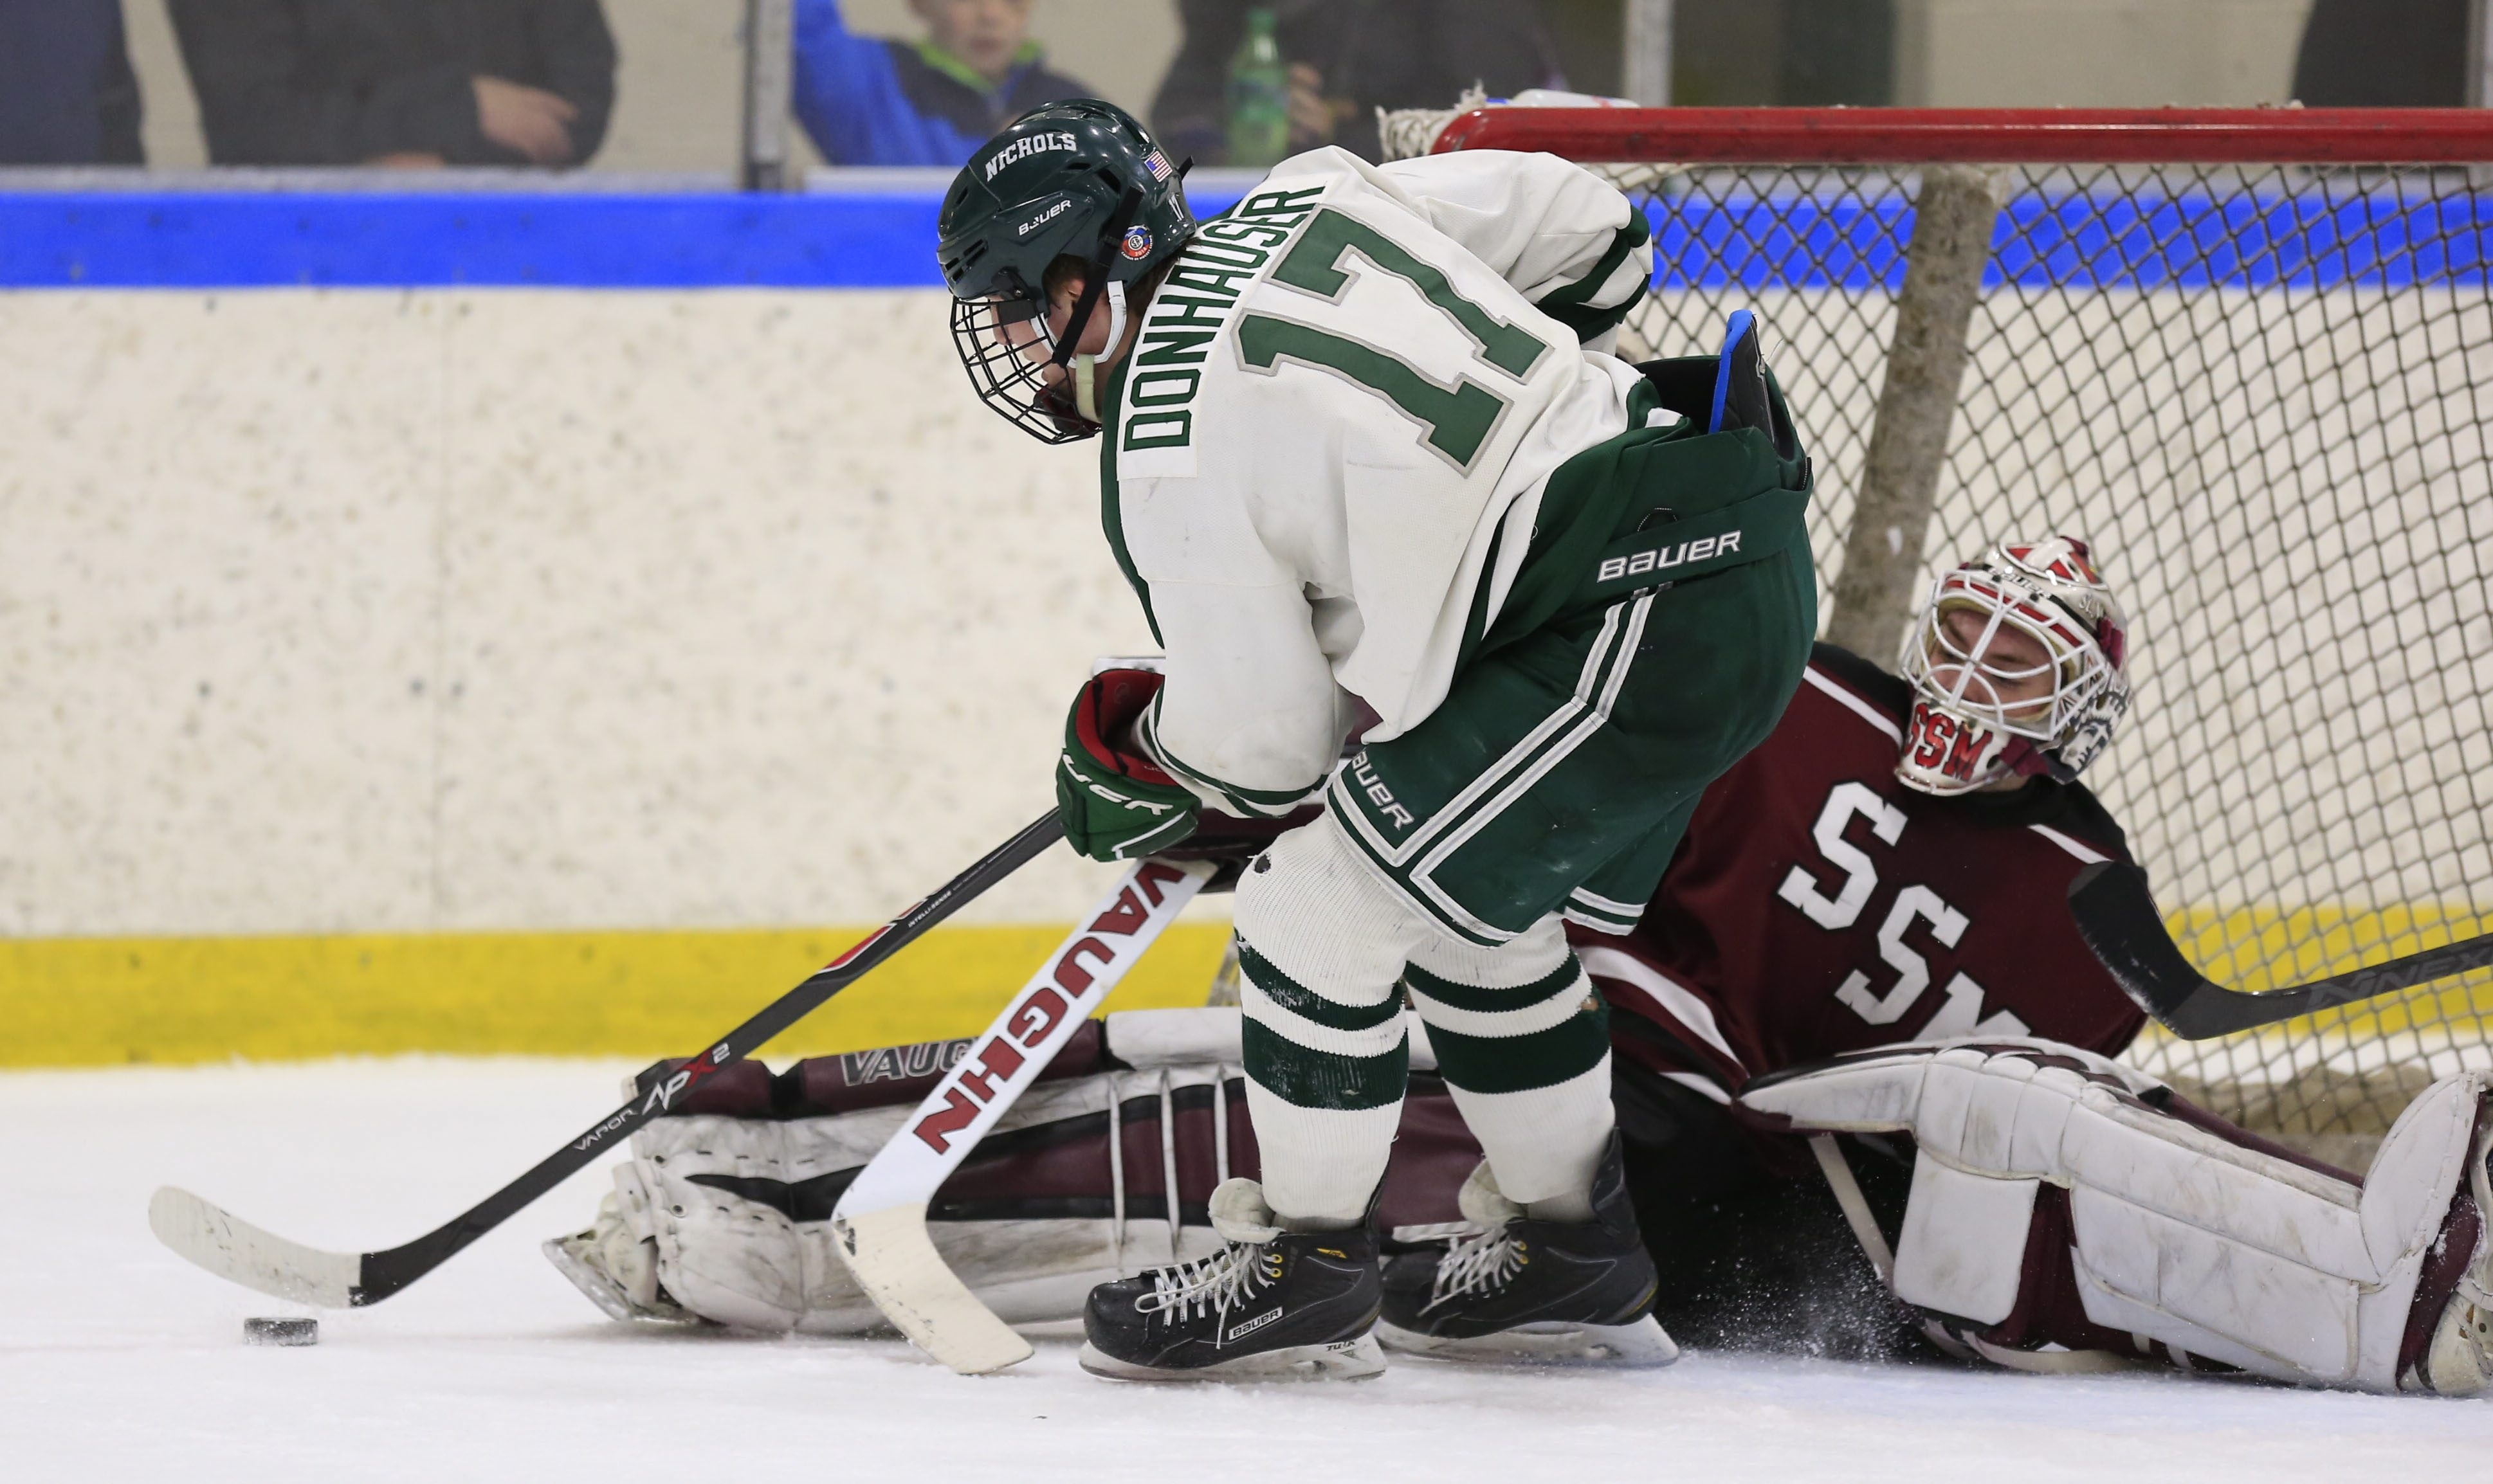 Cole Donhuaser of Nichols gets stopped by Shattuck-St. Mary's goaltender David Tomeo at Dann Memorial Rink Friday. SSM came away with a 5-1 victory.